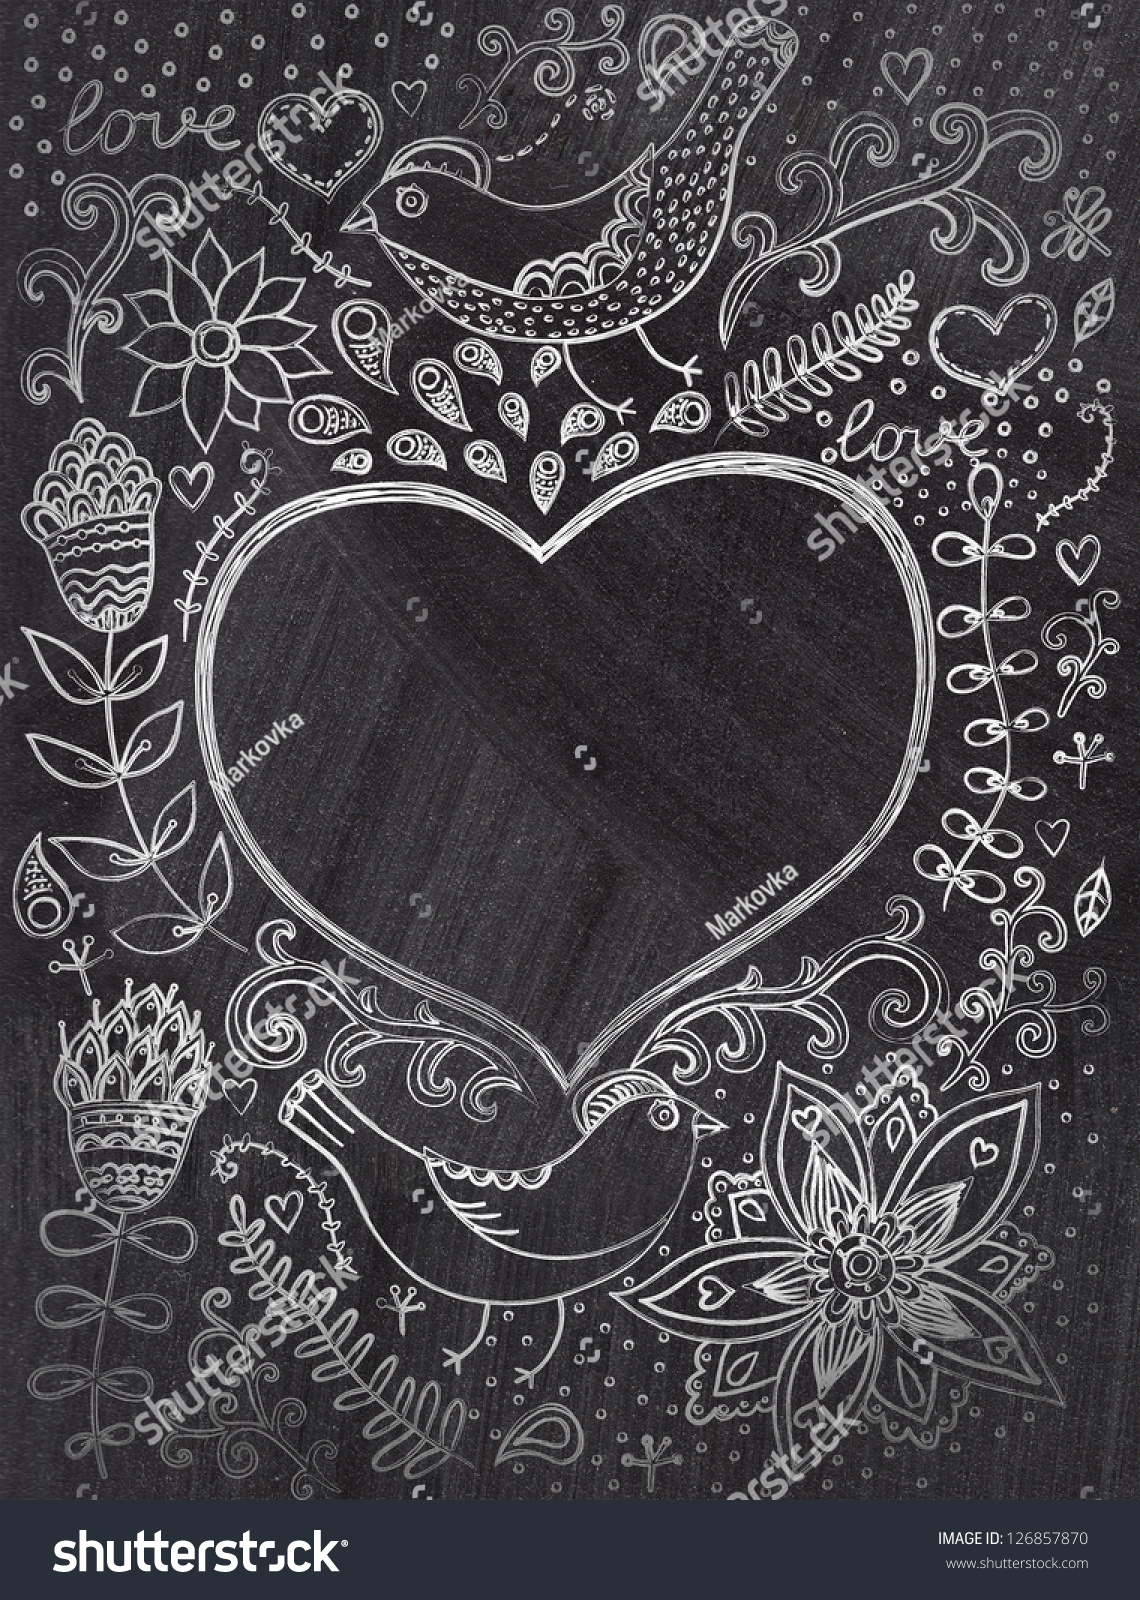 Vintage Chalk Background Floral Ornament Heart Stock